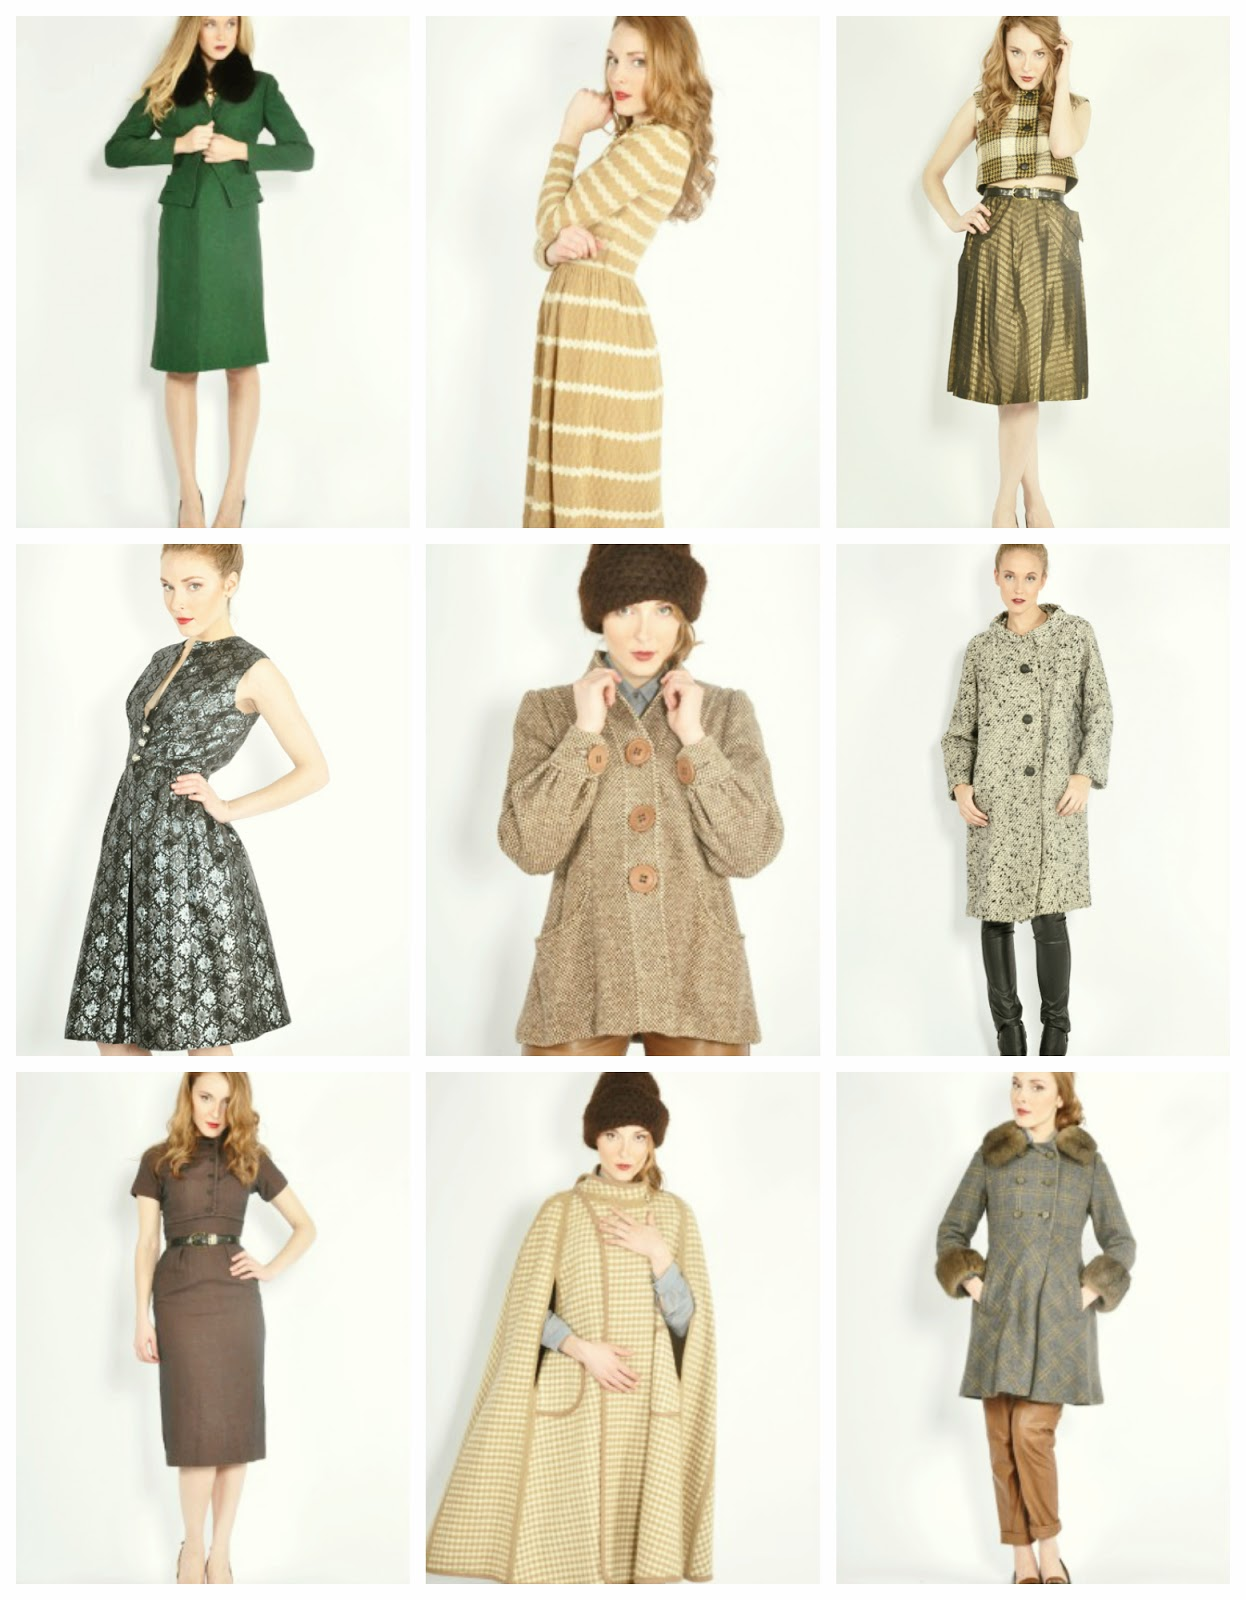 Online Vintage Clothing Stores